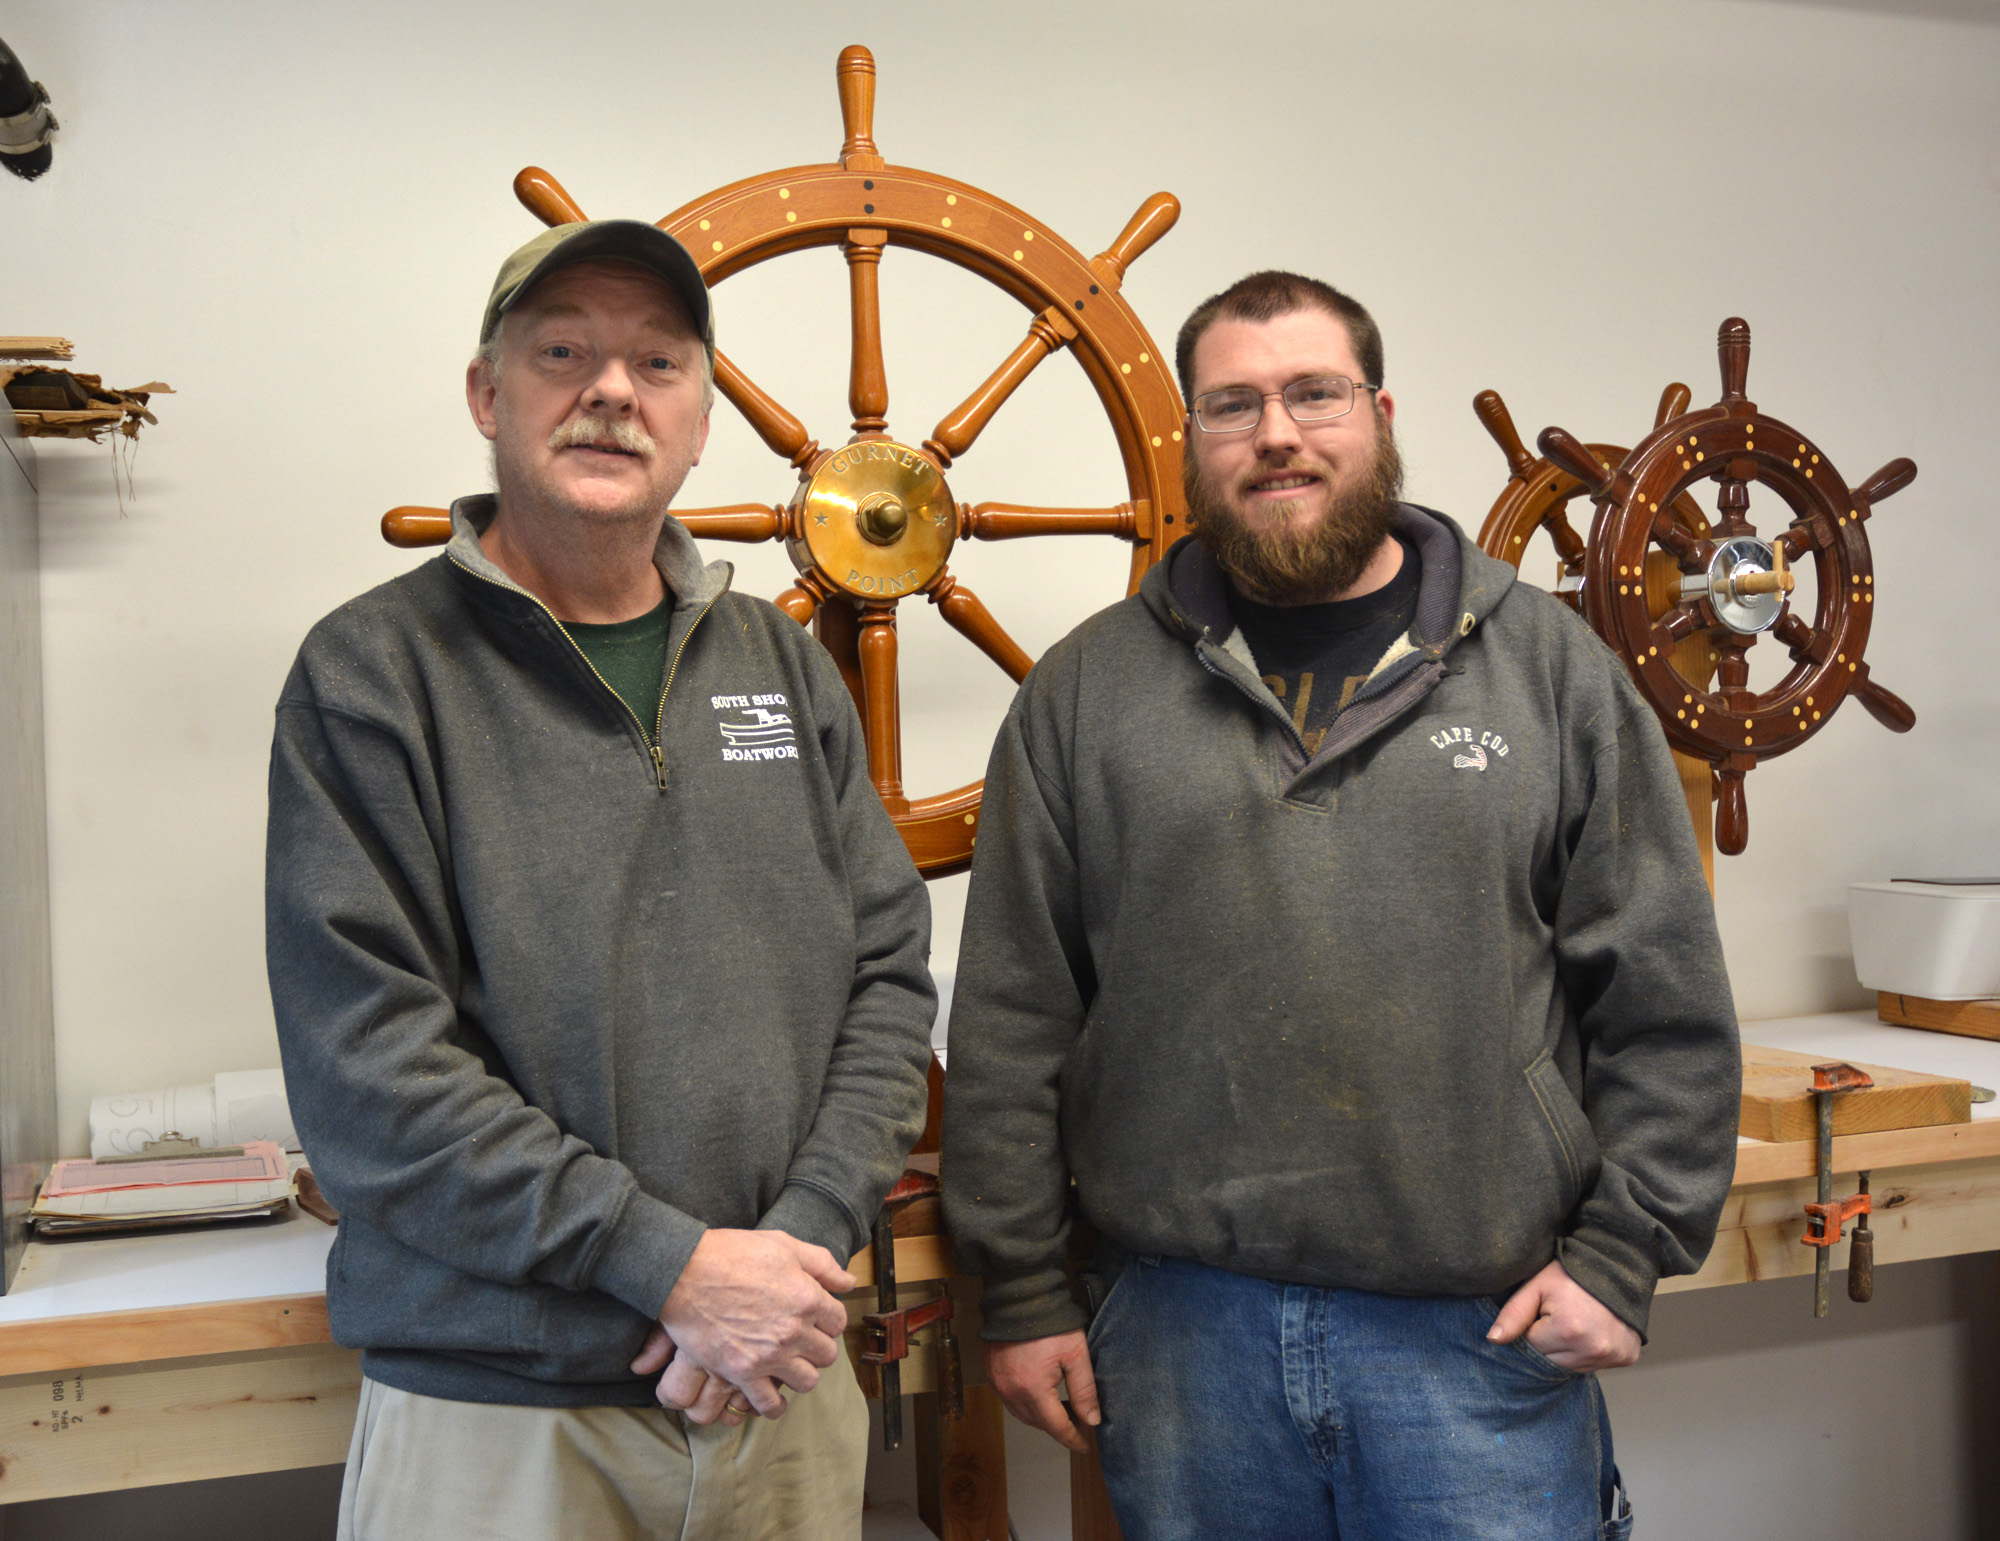 Master craftsman Bob Fuller (left) and apprentice John O'Rourke.